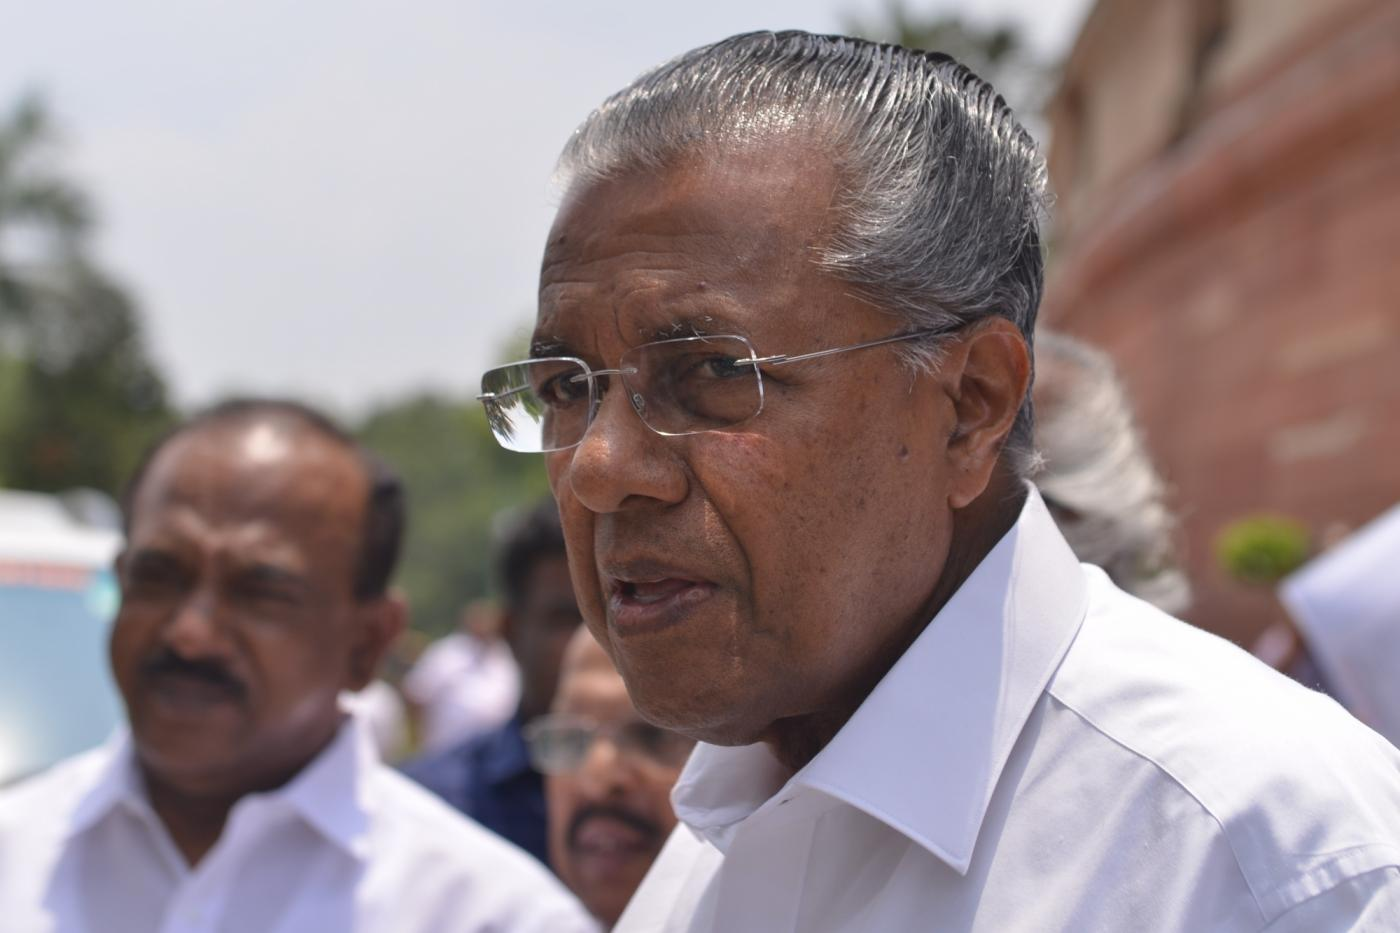 New Delhi: Kerala Chief Minister Pinarayi Vijayan seen leaving after day-2 of Parliament's monsoon session, in New Delhi, on July 19, 2018. (Photo: IANS) by .